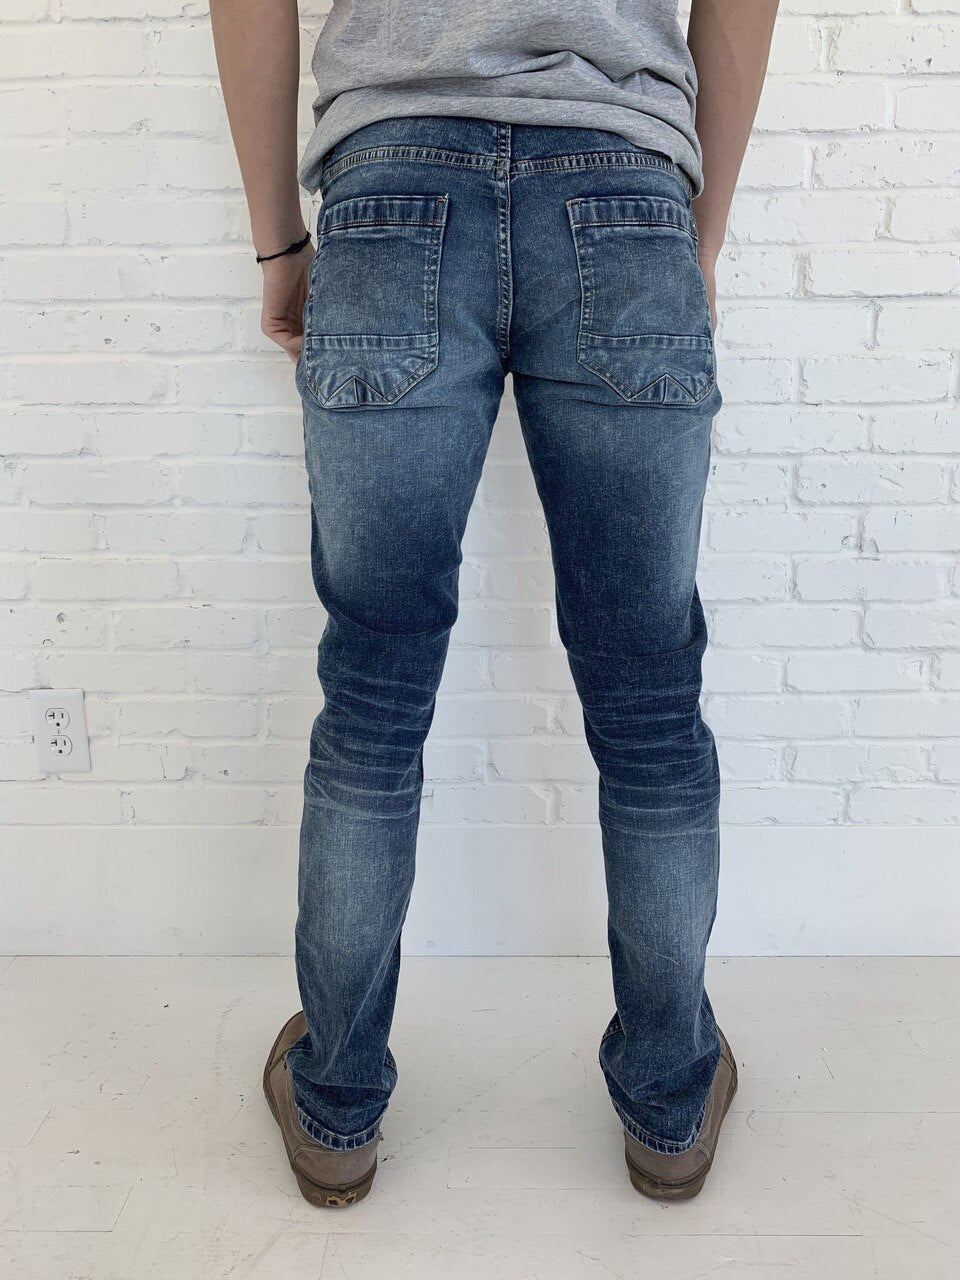 Hiri Denim Jeans 2